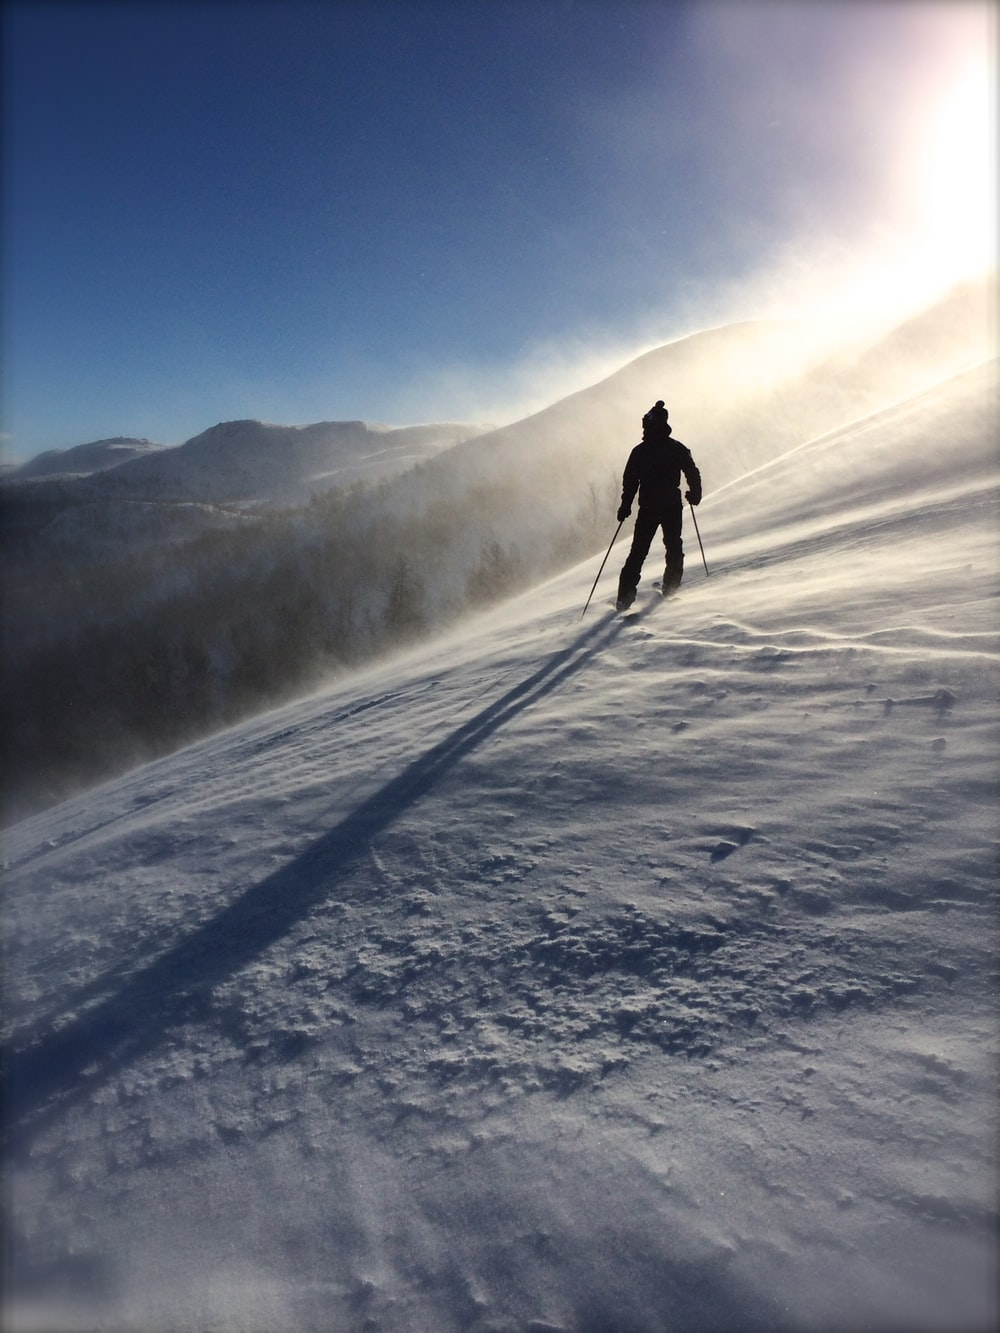 man skiing on ice near trees during daytime